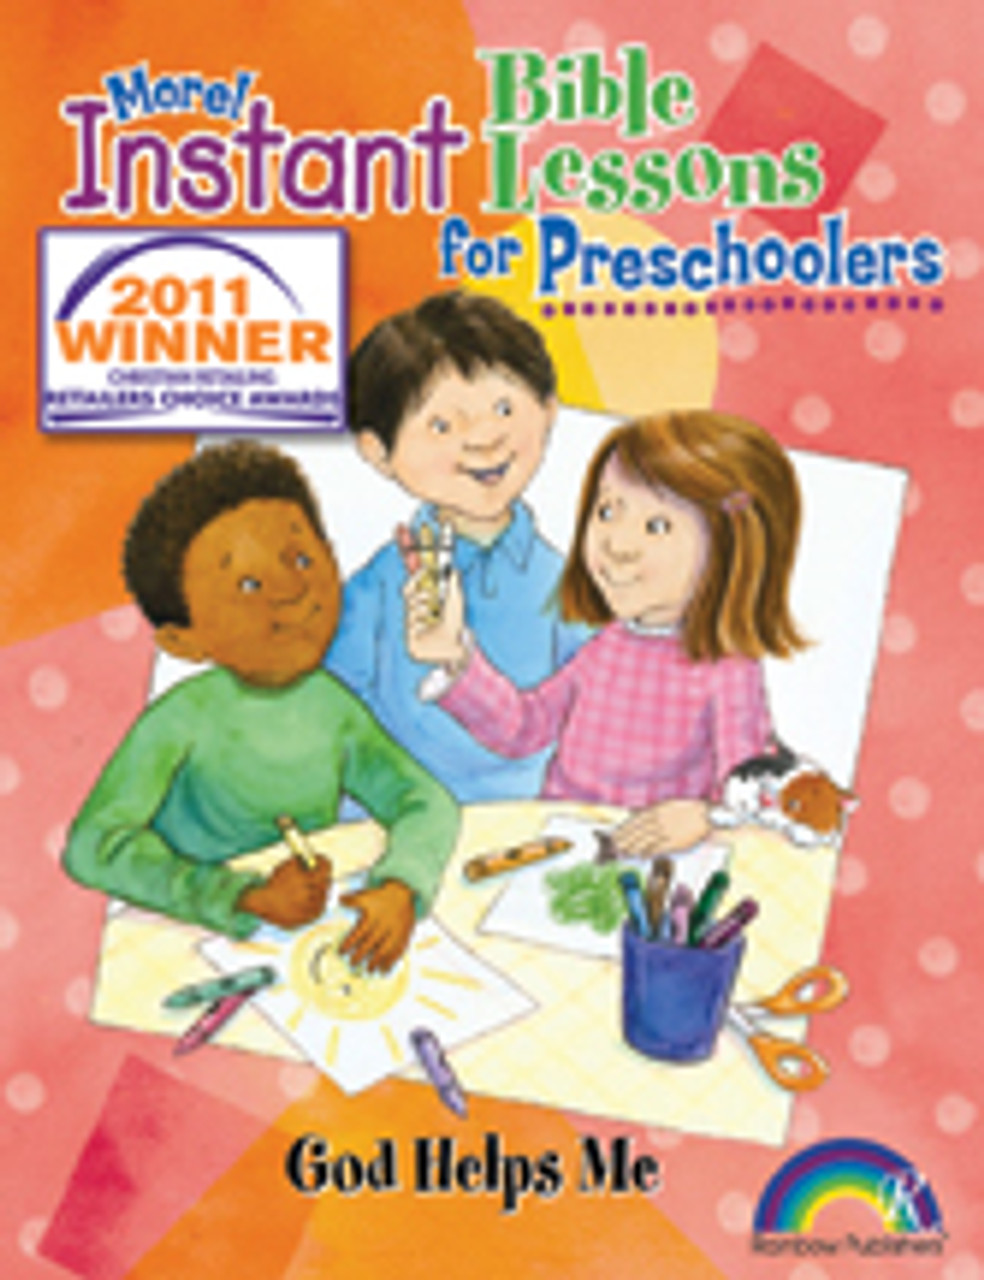 Instant Bible Lessons for Preschoolers - God Helps Me